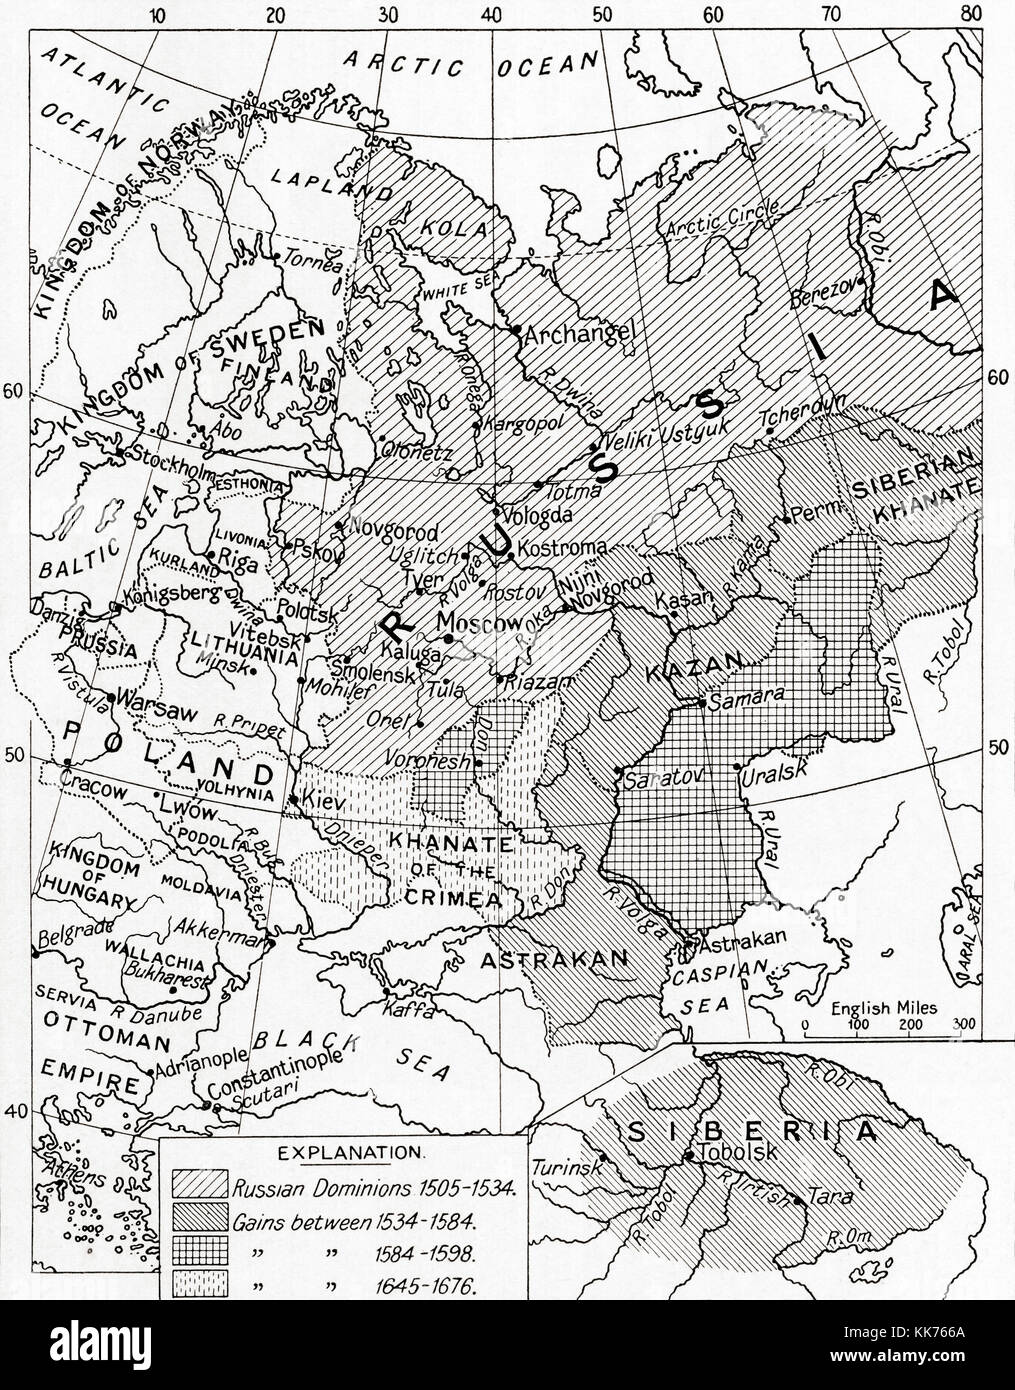 Map of Russia in the 16th and 17th centuries.  From Hutchinson's History of the Nations, published 1915. - Stock Image